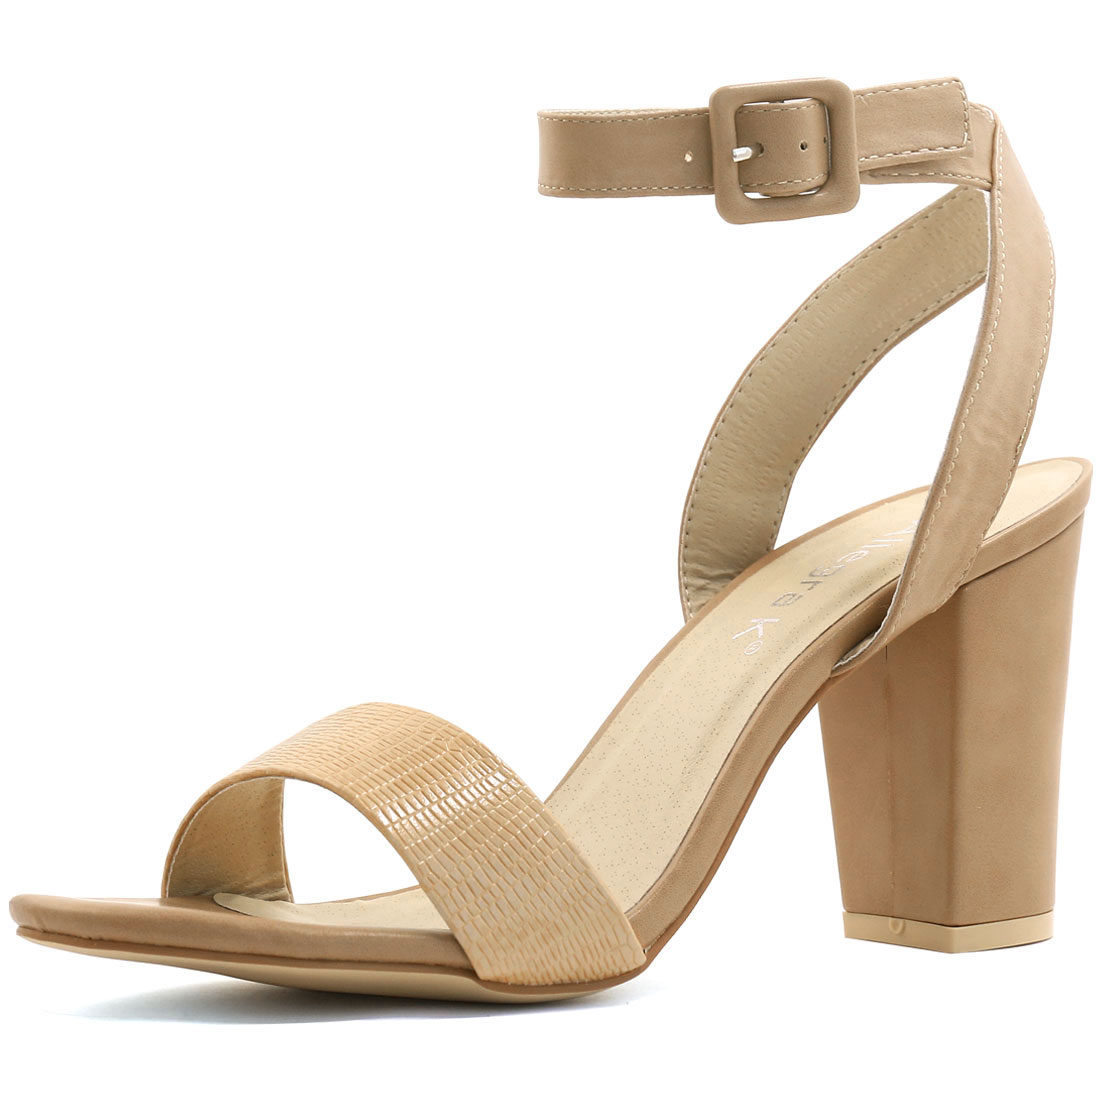 Woman Textured Vamp Chunky Heel Ankle Strap Sandals Tan US 10